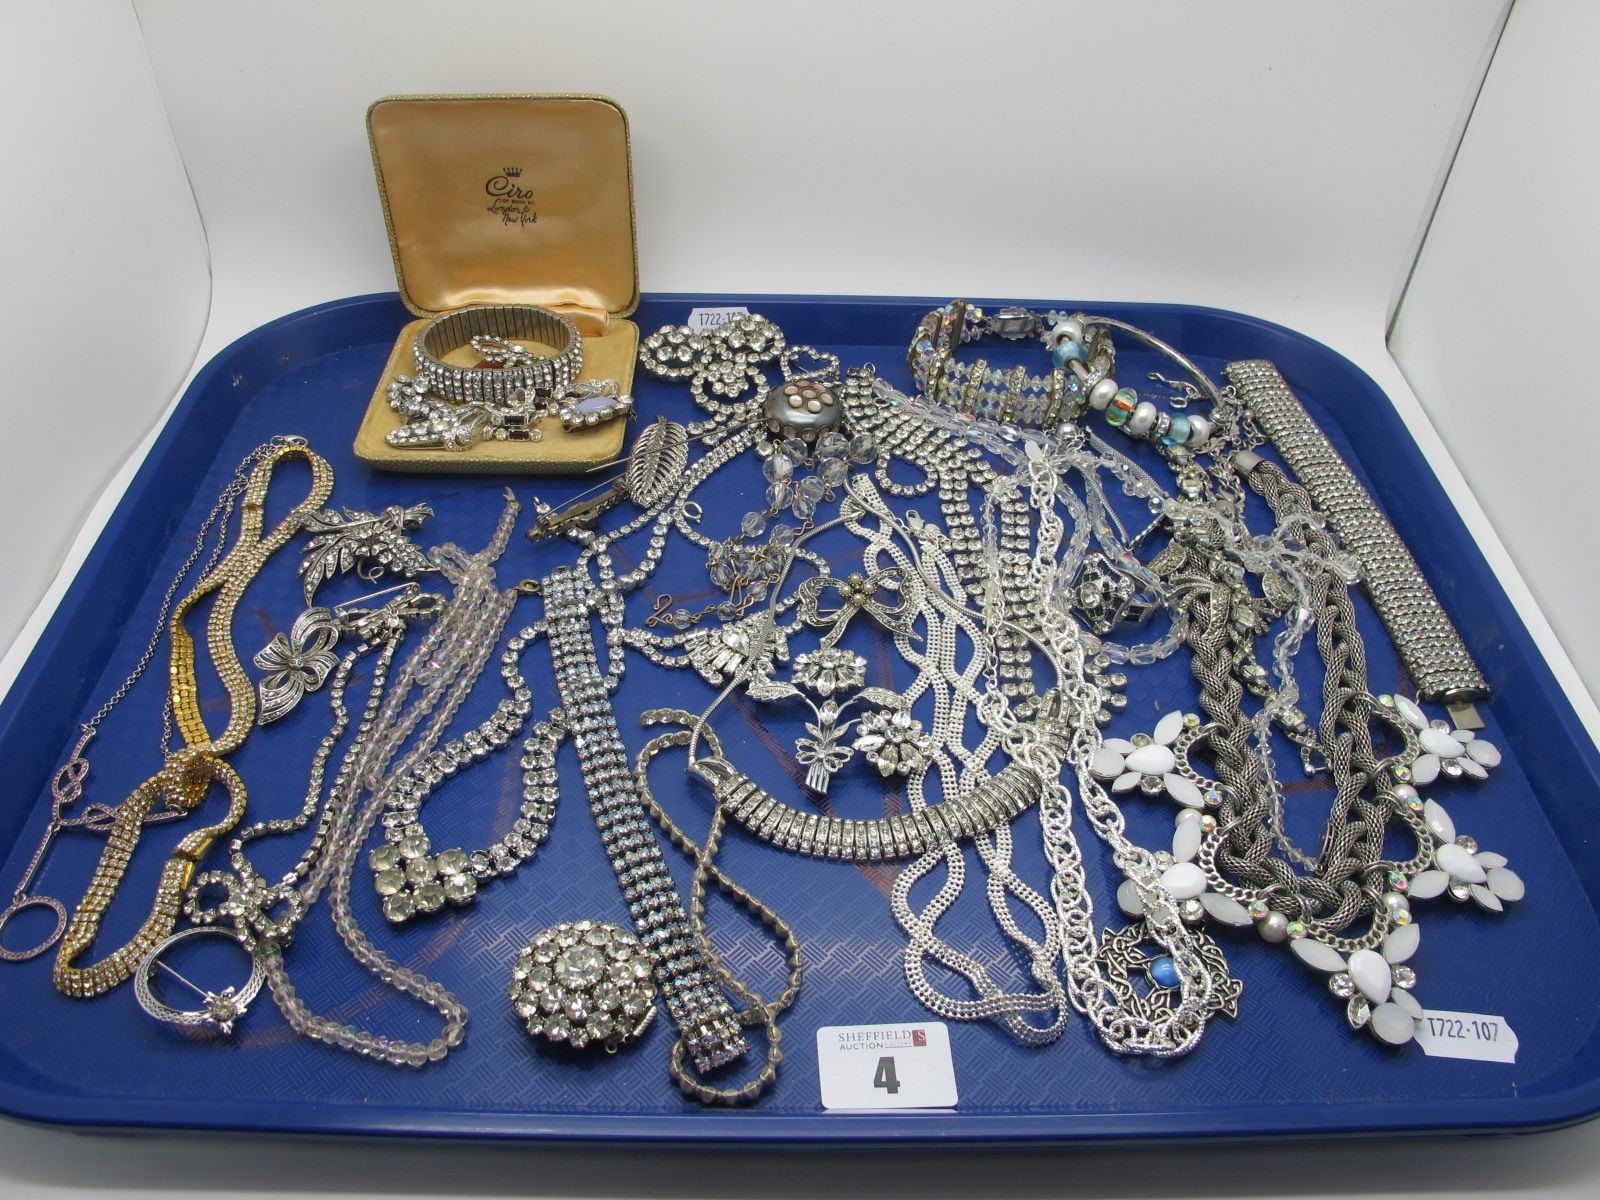 Vintage and Later Diamanté Costume Jewellery, including brooches, panel style bracelets, ornate